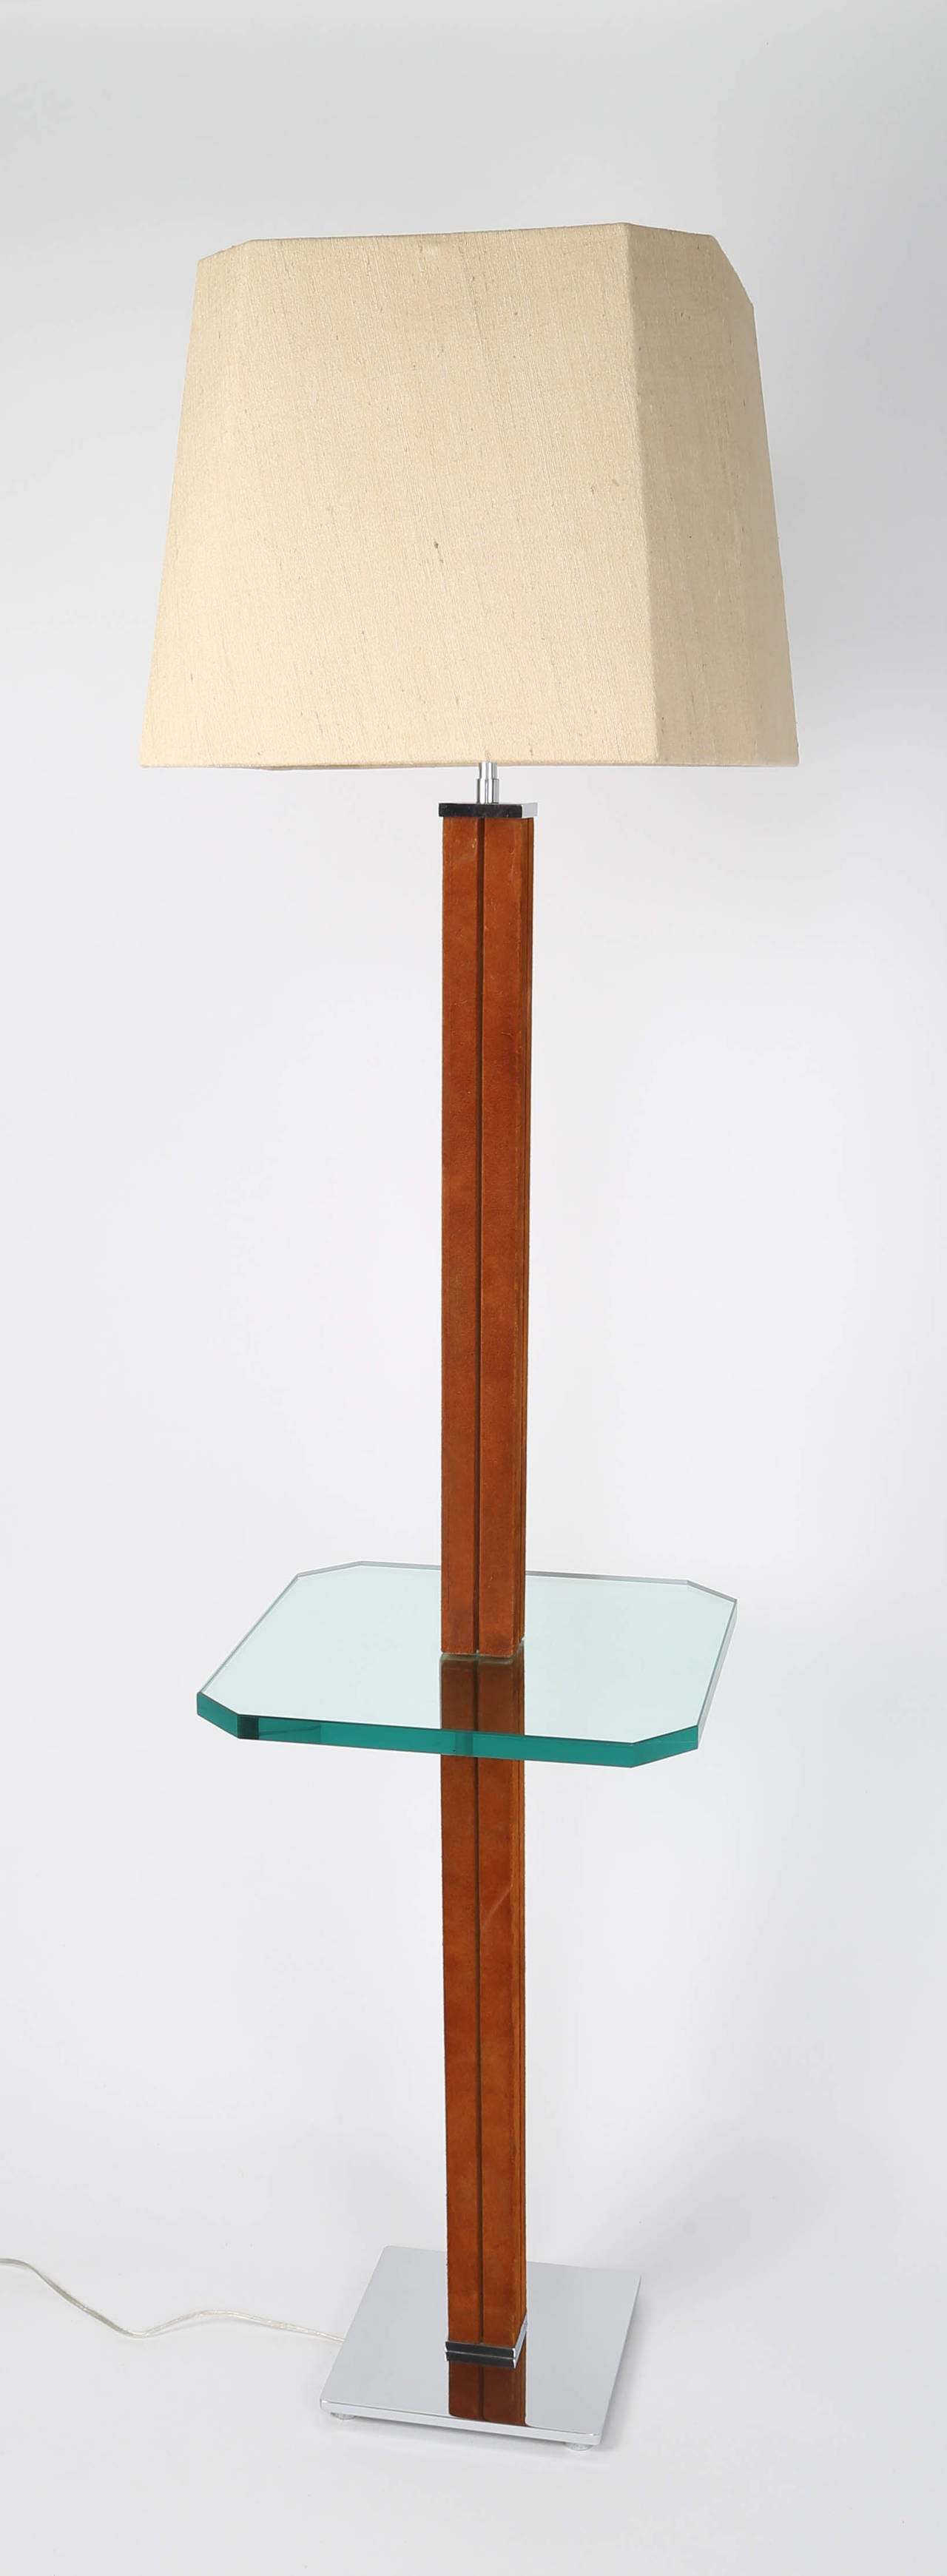 Gorgeous 1970s lamp table by Karl Springer features a stem wrapped in tobacco-brown suede supporting a 3/4